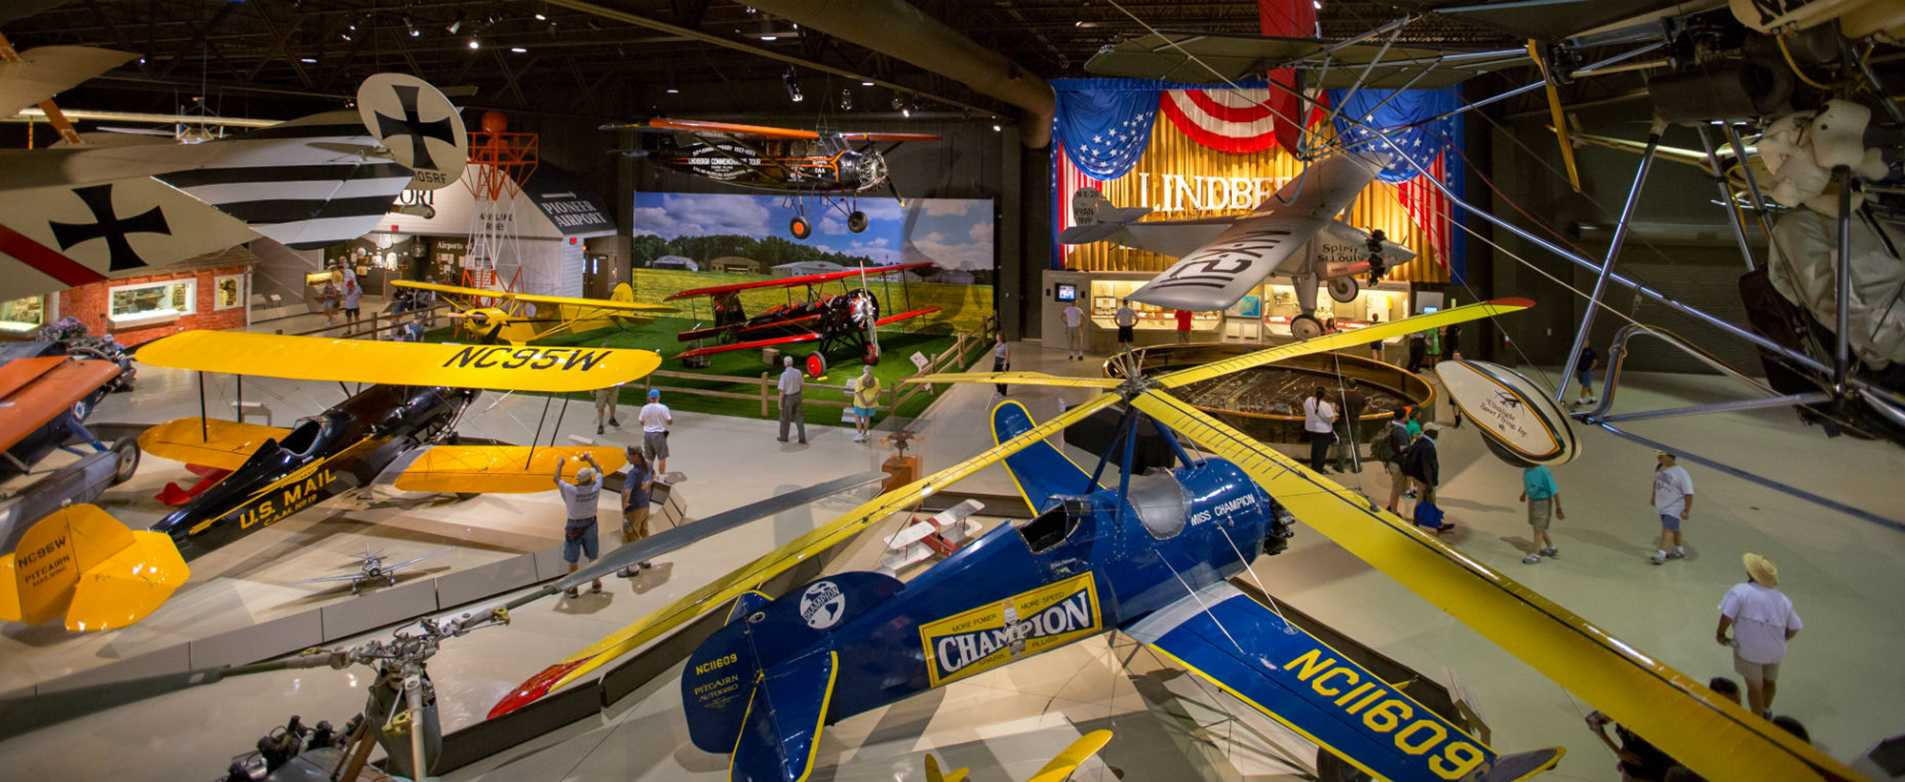 Airplane Exhibit at EAA AirVenture Museum